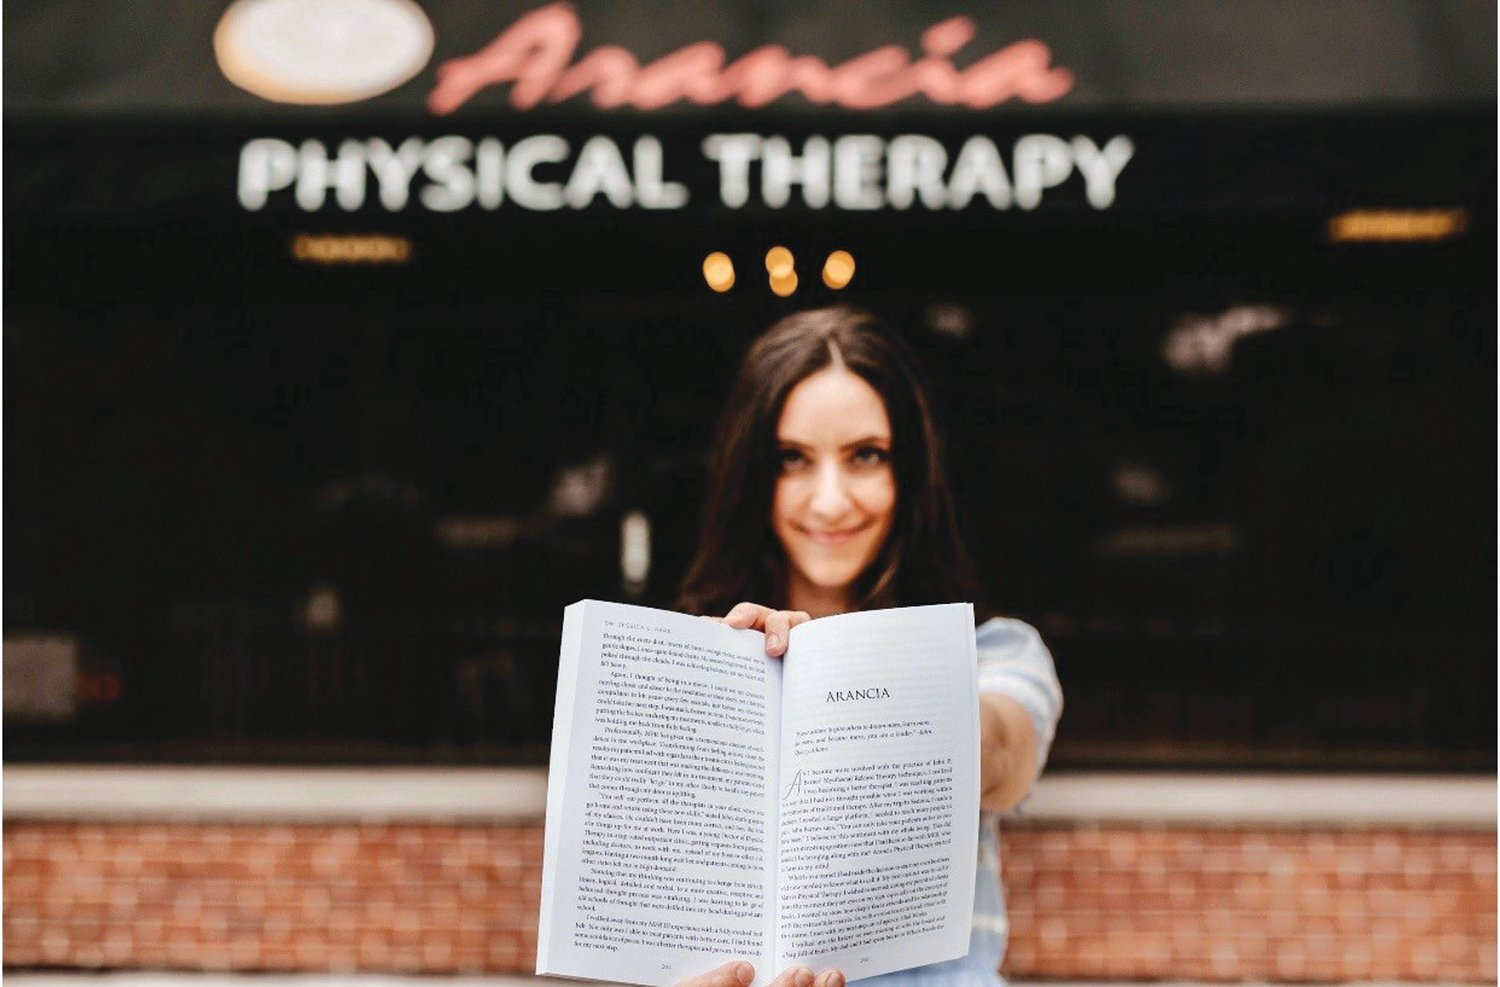 Meet Dr. Jessica Papa of Arancia Physical Therapy in Cranston, seen here showcasing her book Conquering Mystery Pain.  Her practice specializes in the alleviation of chronic pain, and so much more. Visit Dr. Jess at www.aranciapt.com to find out more.